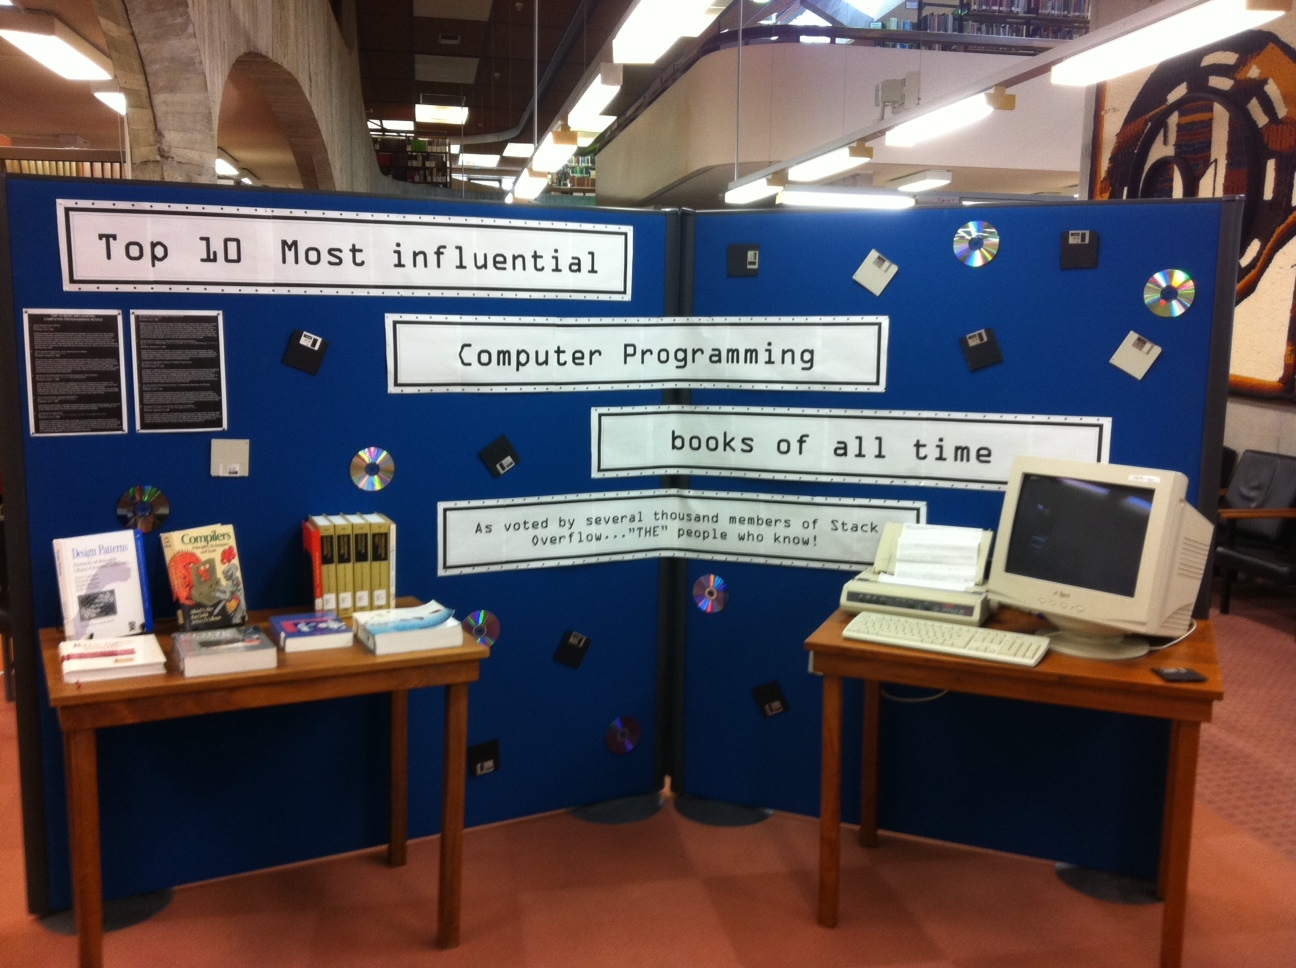 Library Display - Top 10 most influential computer